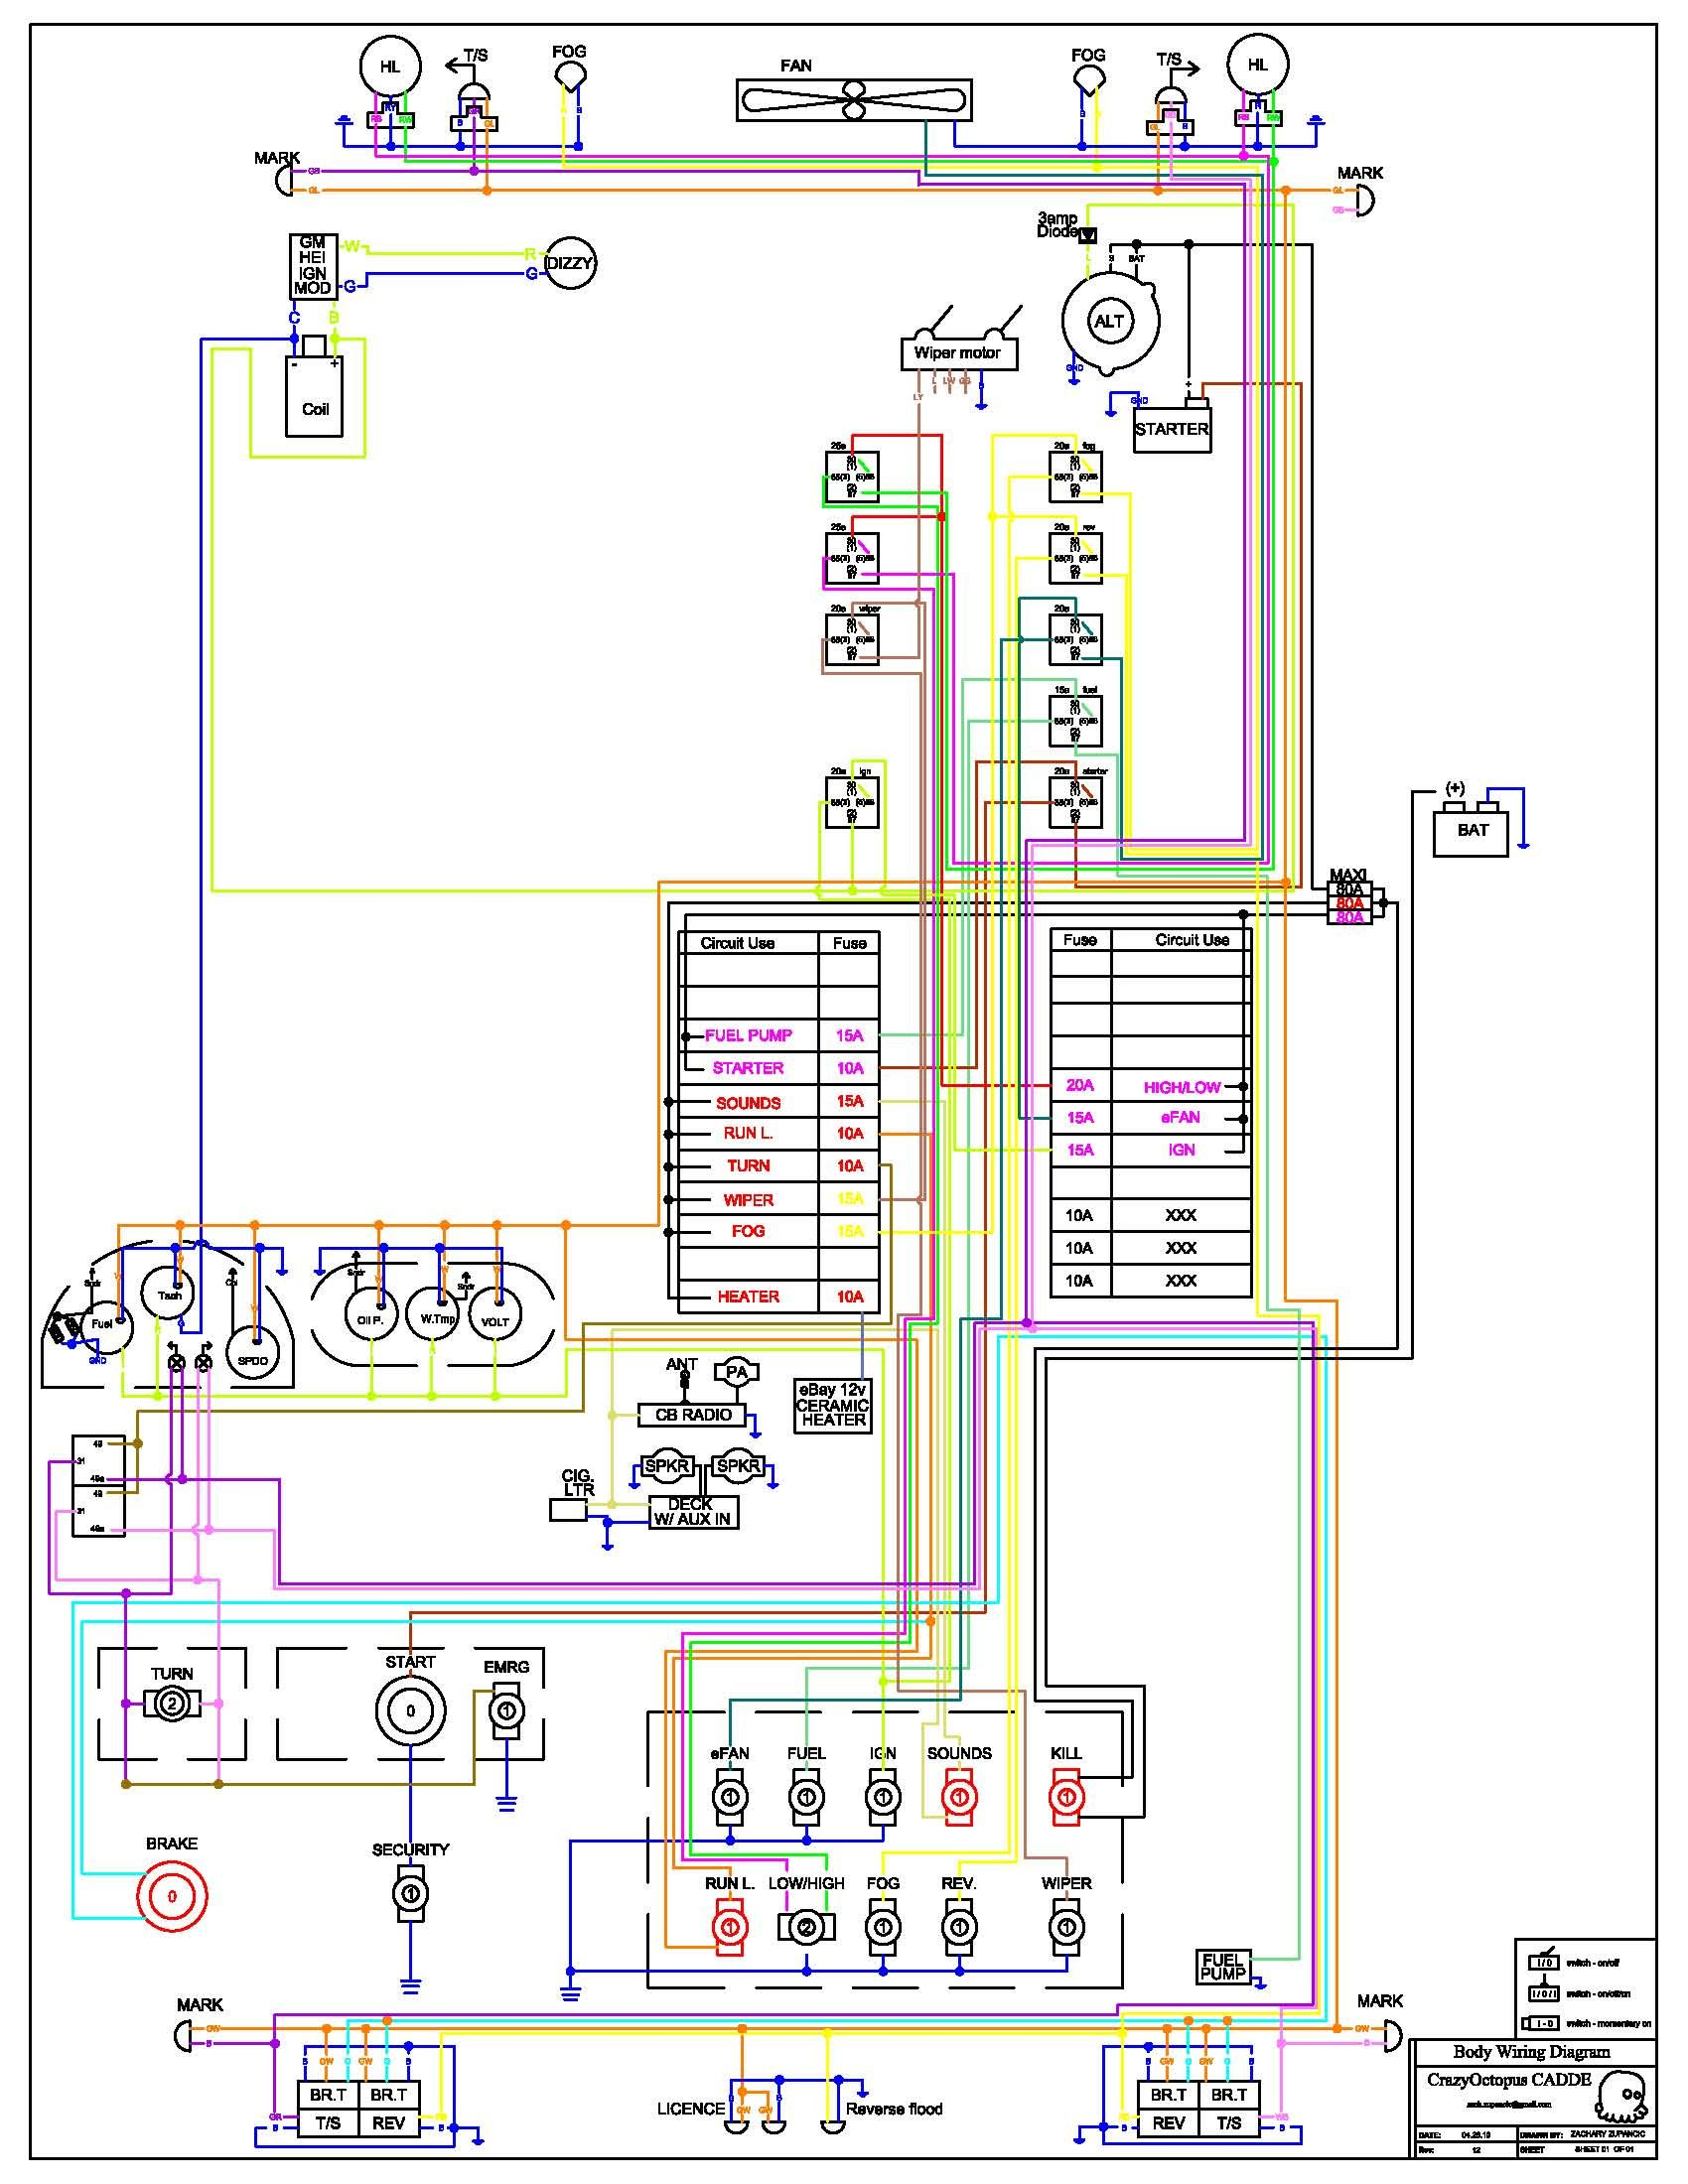 race car wiring diagrams cars diagram floor plans automobile race car kill switch wiring diagram race car wiring diagram [ 1700 x 2200 Pixel ]